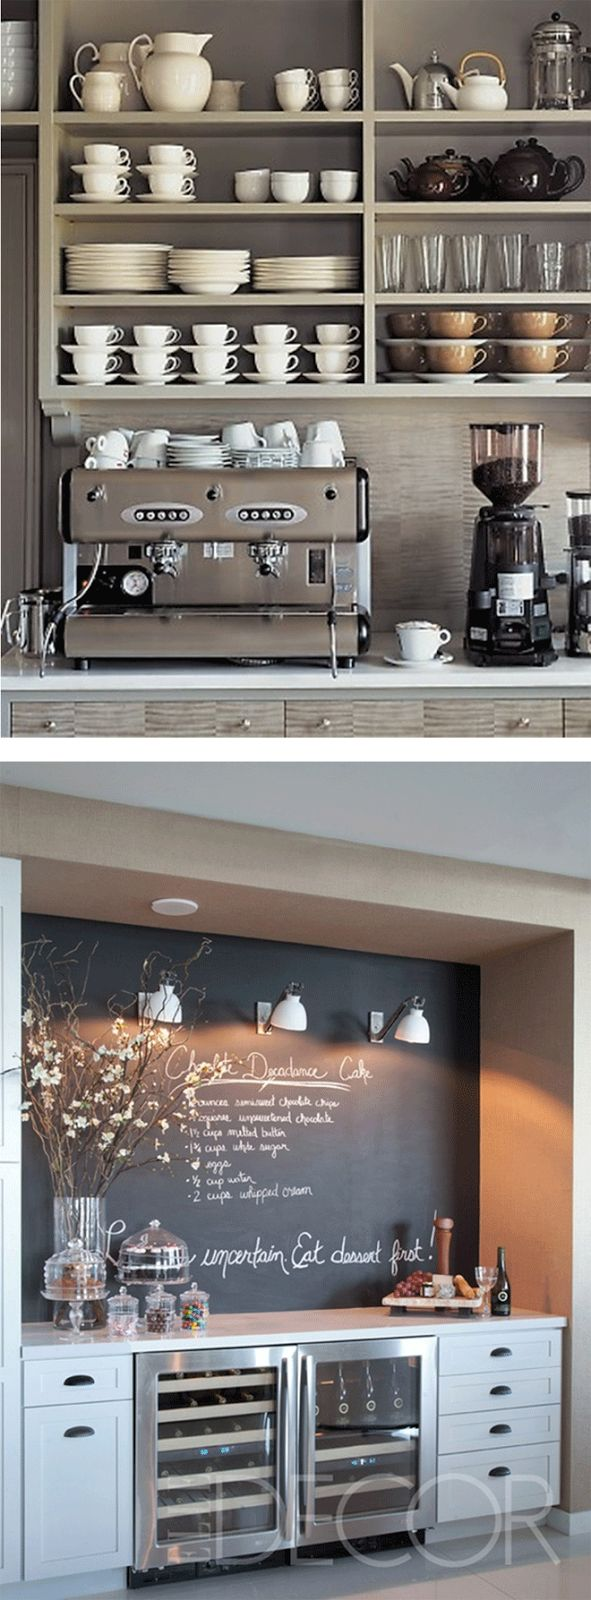 (For All Coffee Lovers) 20+ Charming Coffee Station Ideas to Steal Everybody's Attention